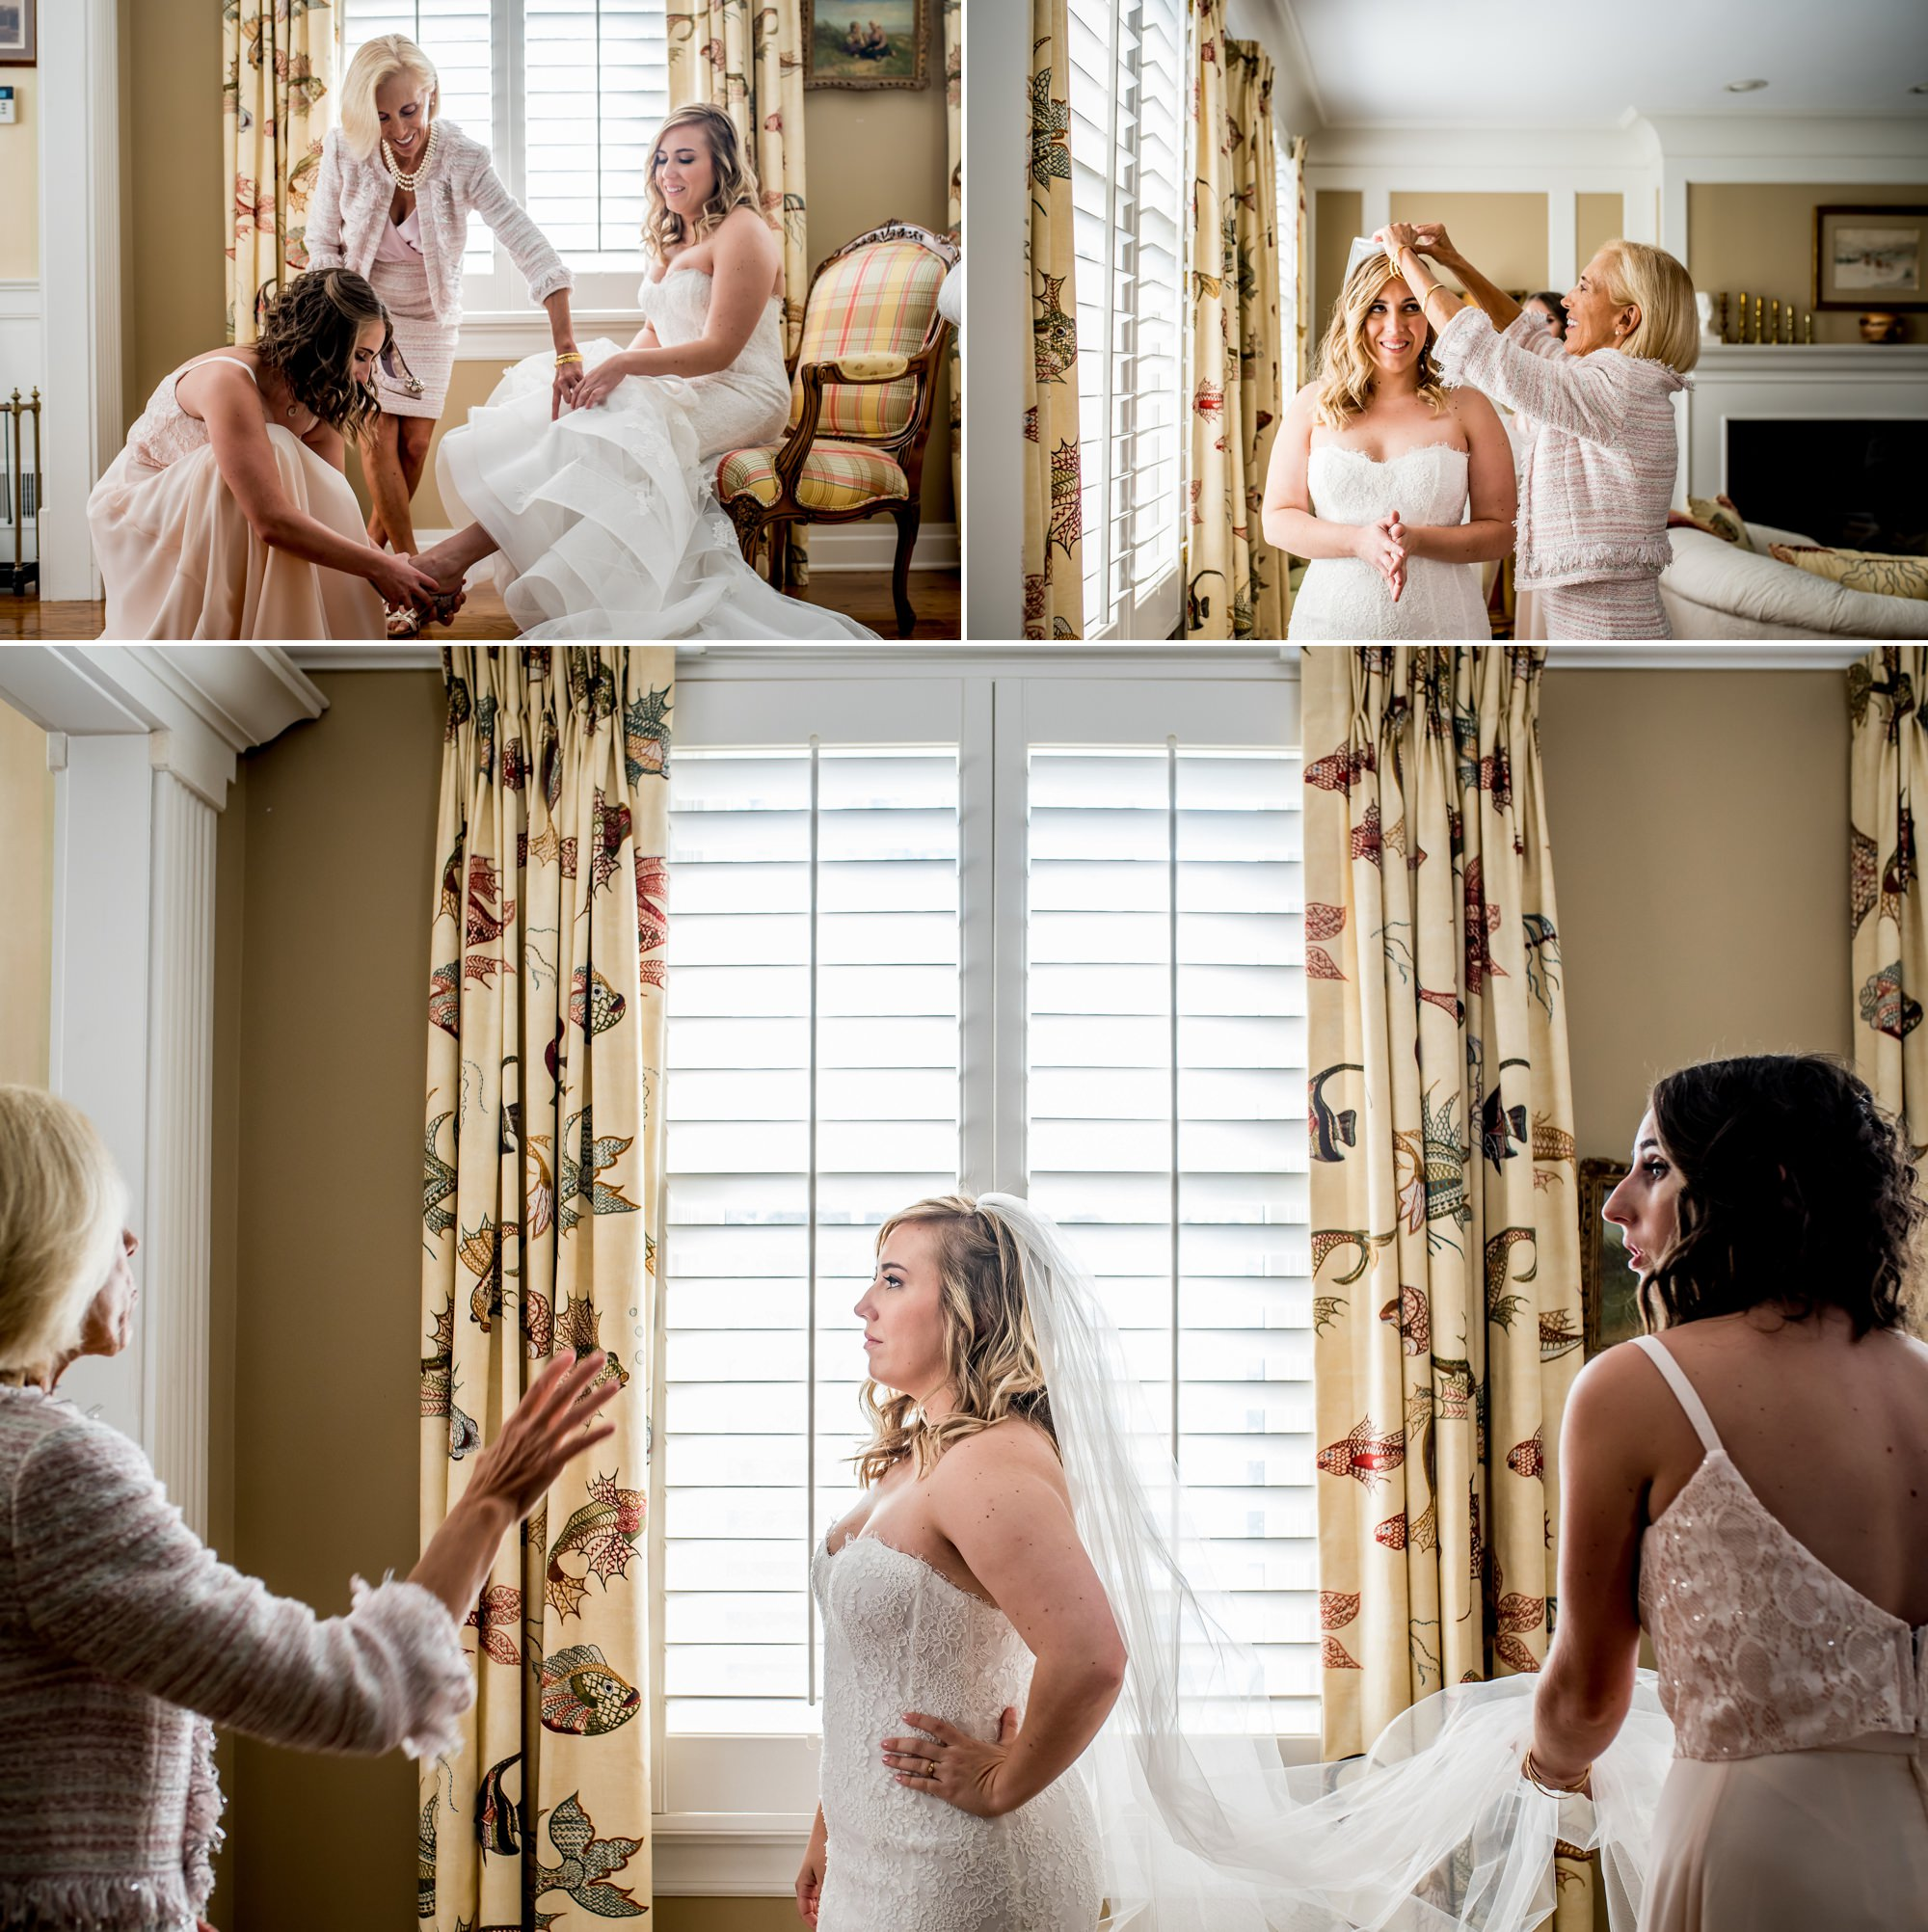 SPRING LAKE BATH AND TENNIS CLUB WEDDING | ST. CATHERINE'S CHURCH WEDDING | SPRING LAKE PHOTOGRAPHERS | MONMOUTH COUNTY PHOTOGRAPHERS | NJ PHOTOGRAPHERS